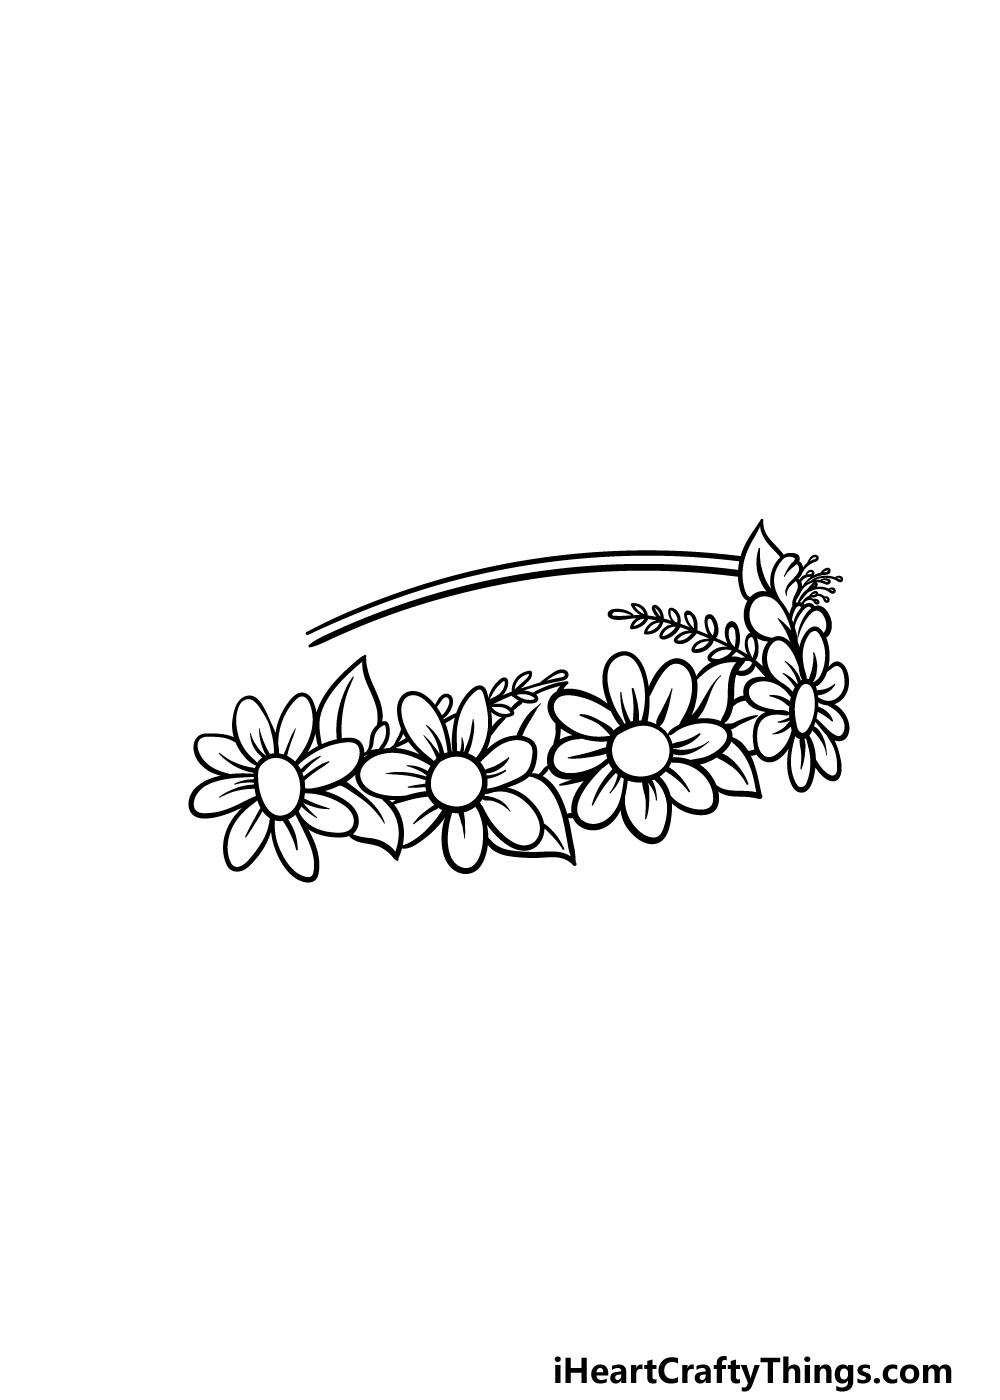 drawing a flower crown step 4